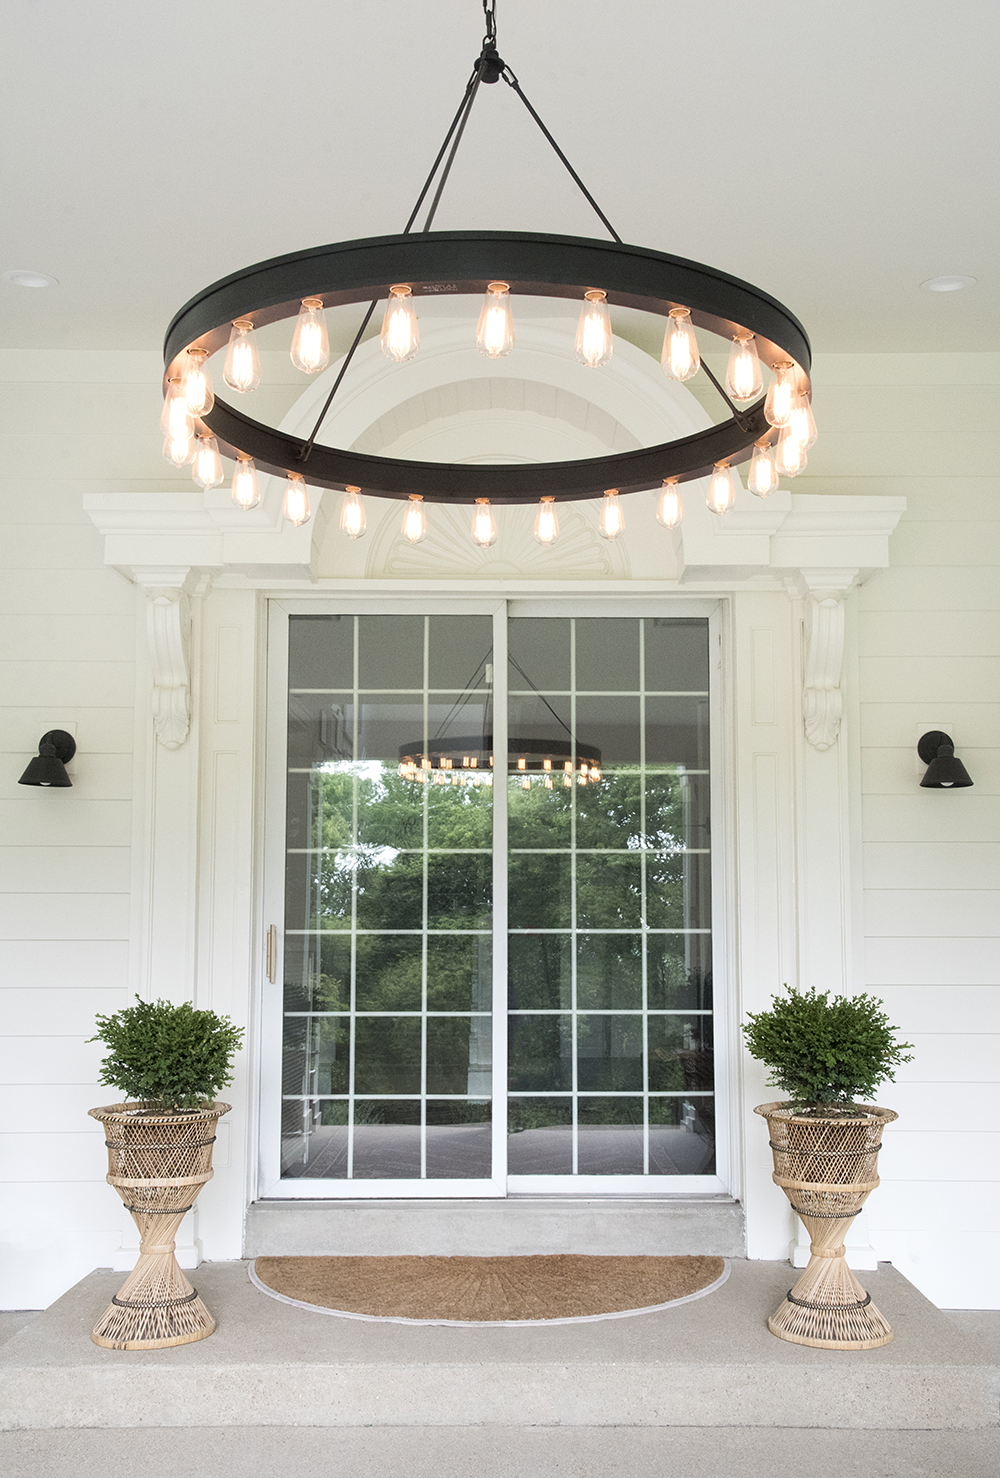 Roundup : Outdoor Sconces + Porch Lights Under $150 - roomfortuesday.com